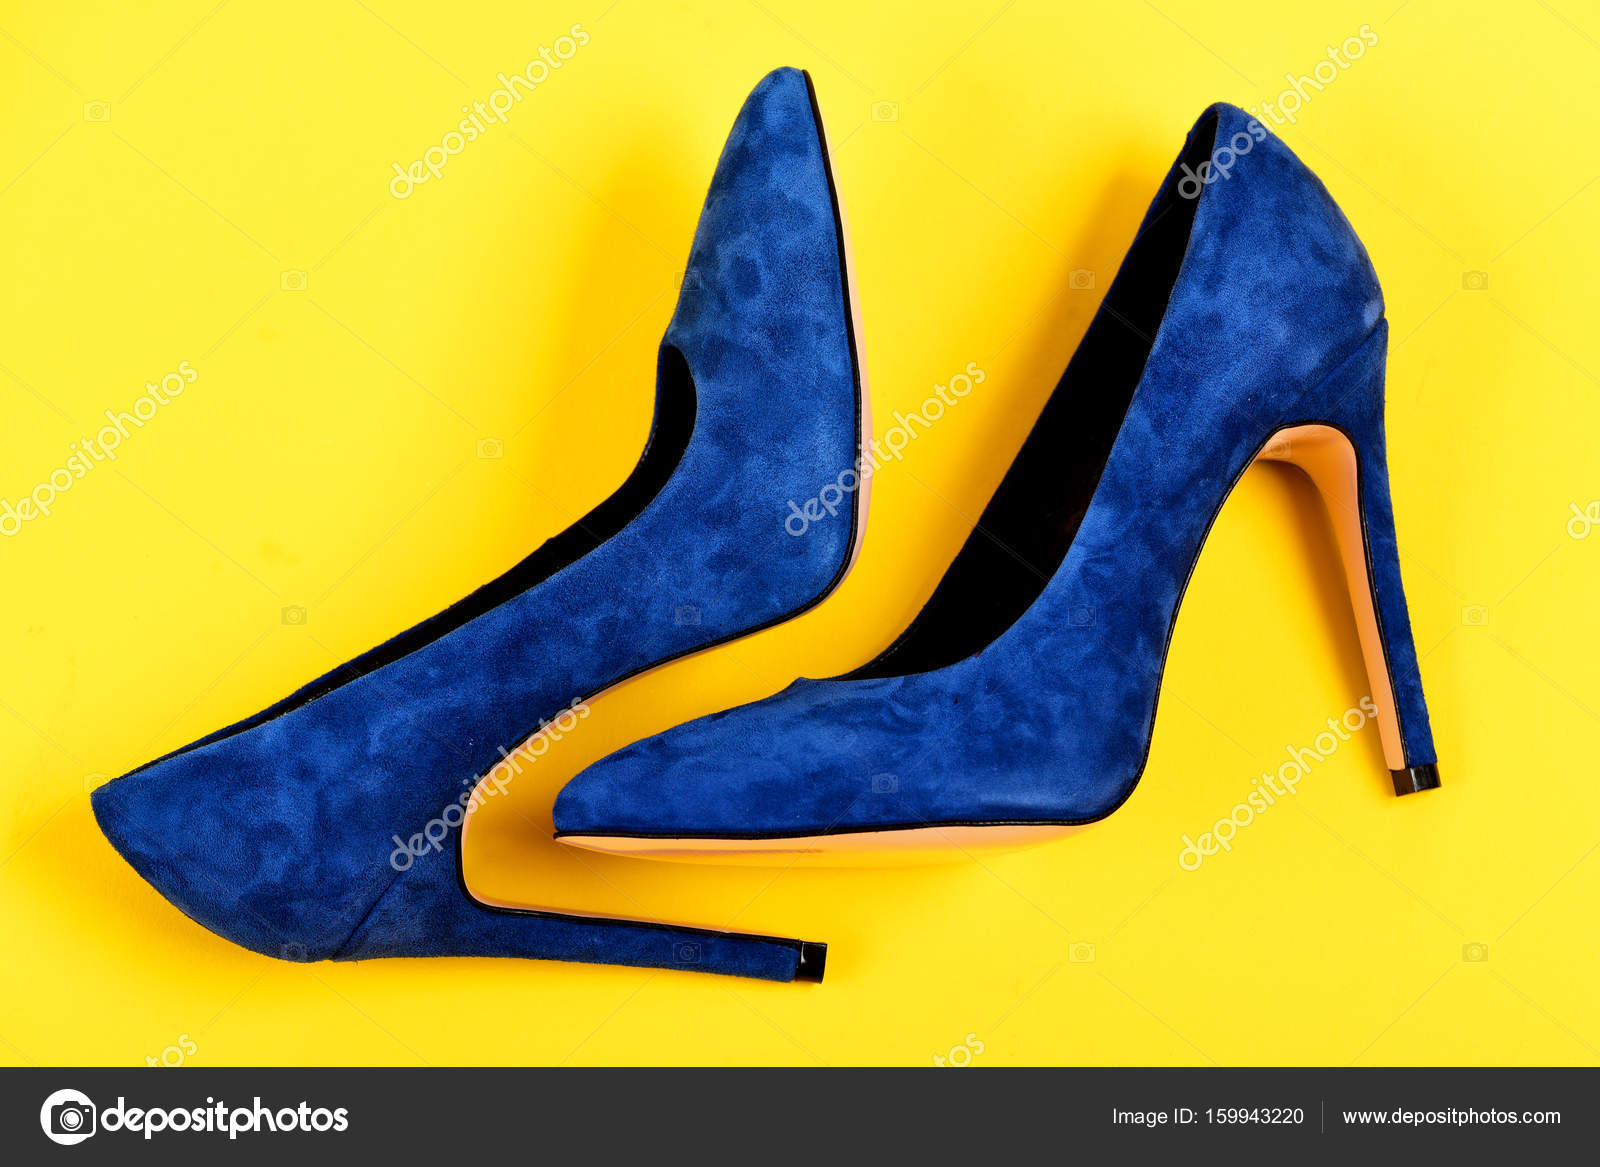 High Heel Footwear Isolated On Yellow Background Shoes In Dark Blue Color Elegance And Fashion Concept Pair Of Fancy Suede Female Top View Photo